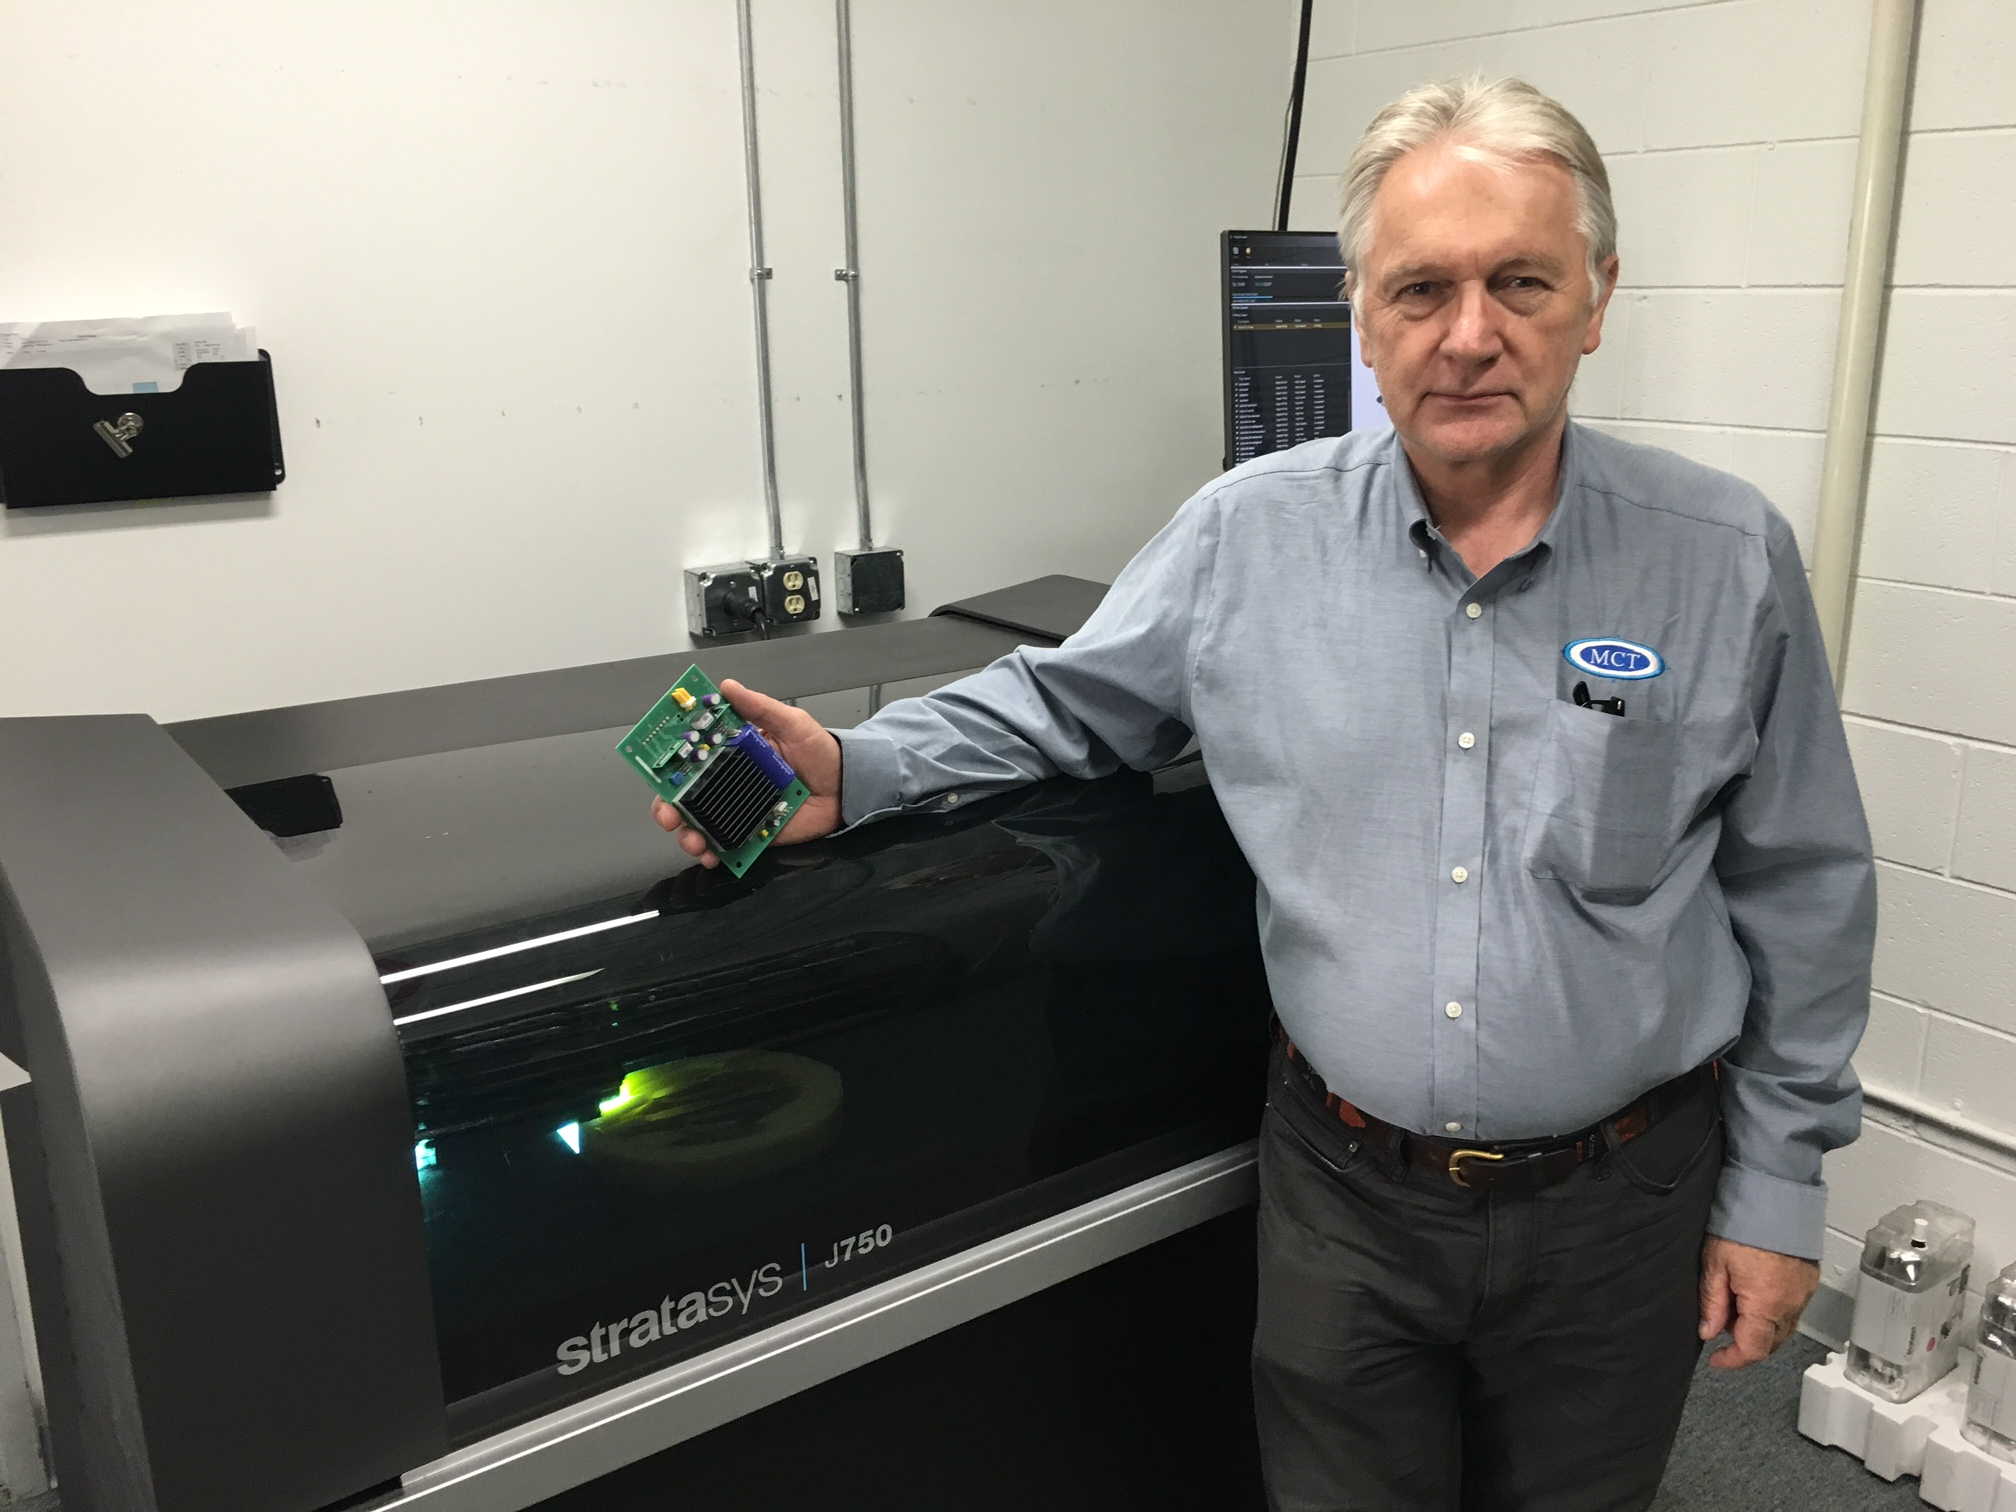 Midwest Composite Technologies' Helmut Keidel with his new Stratasys J750 full color 3D printer